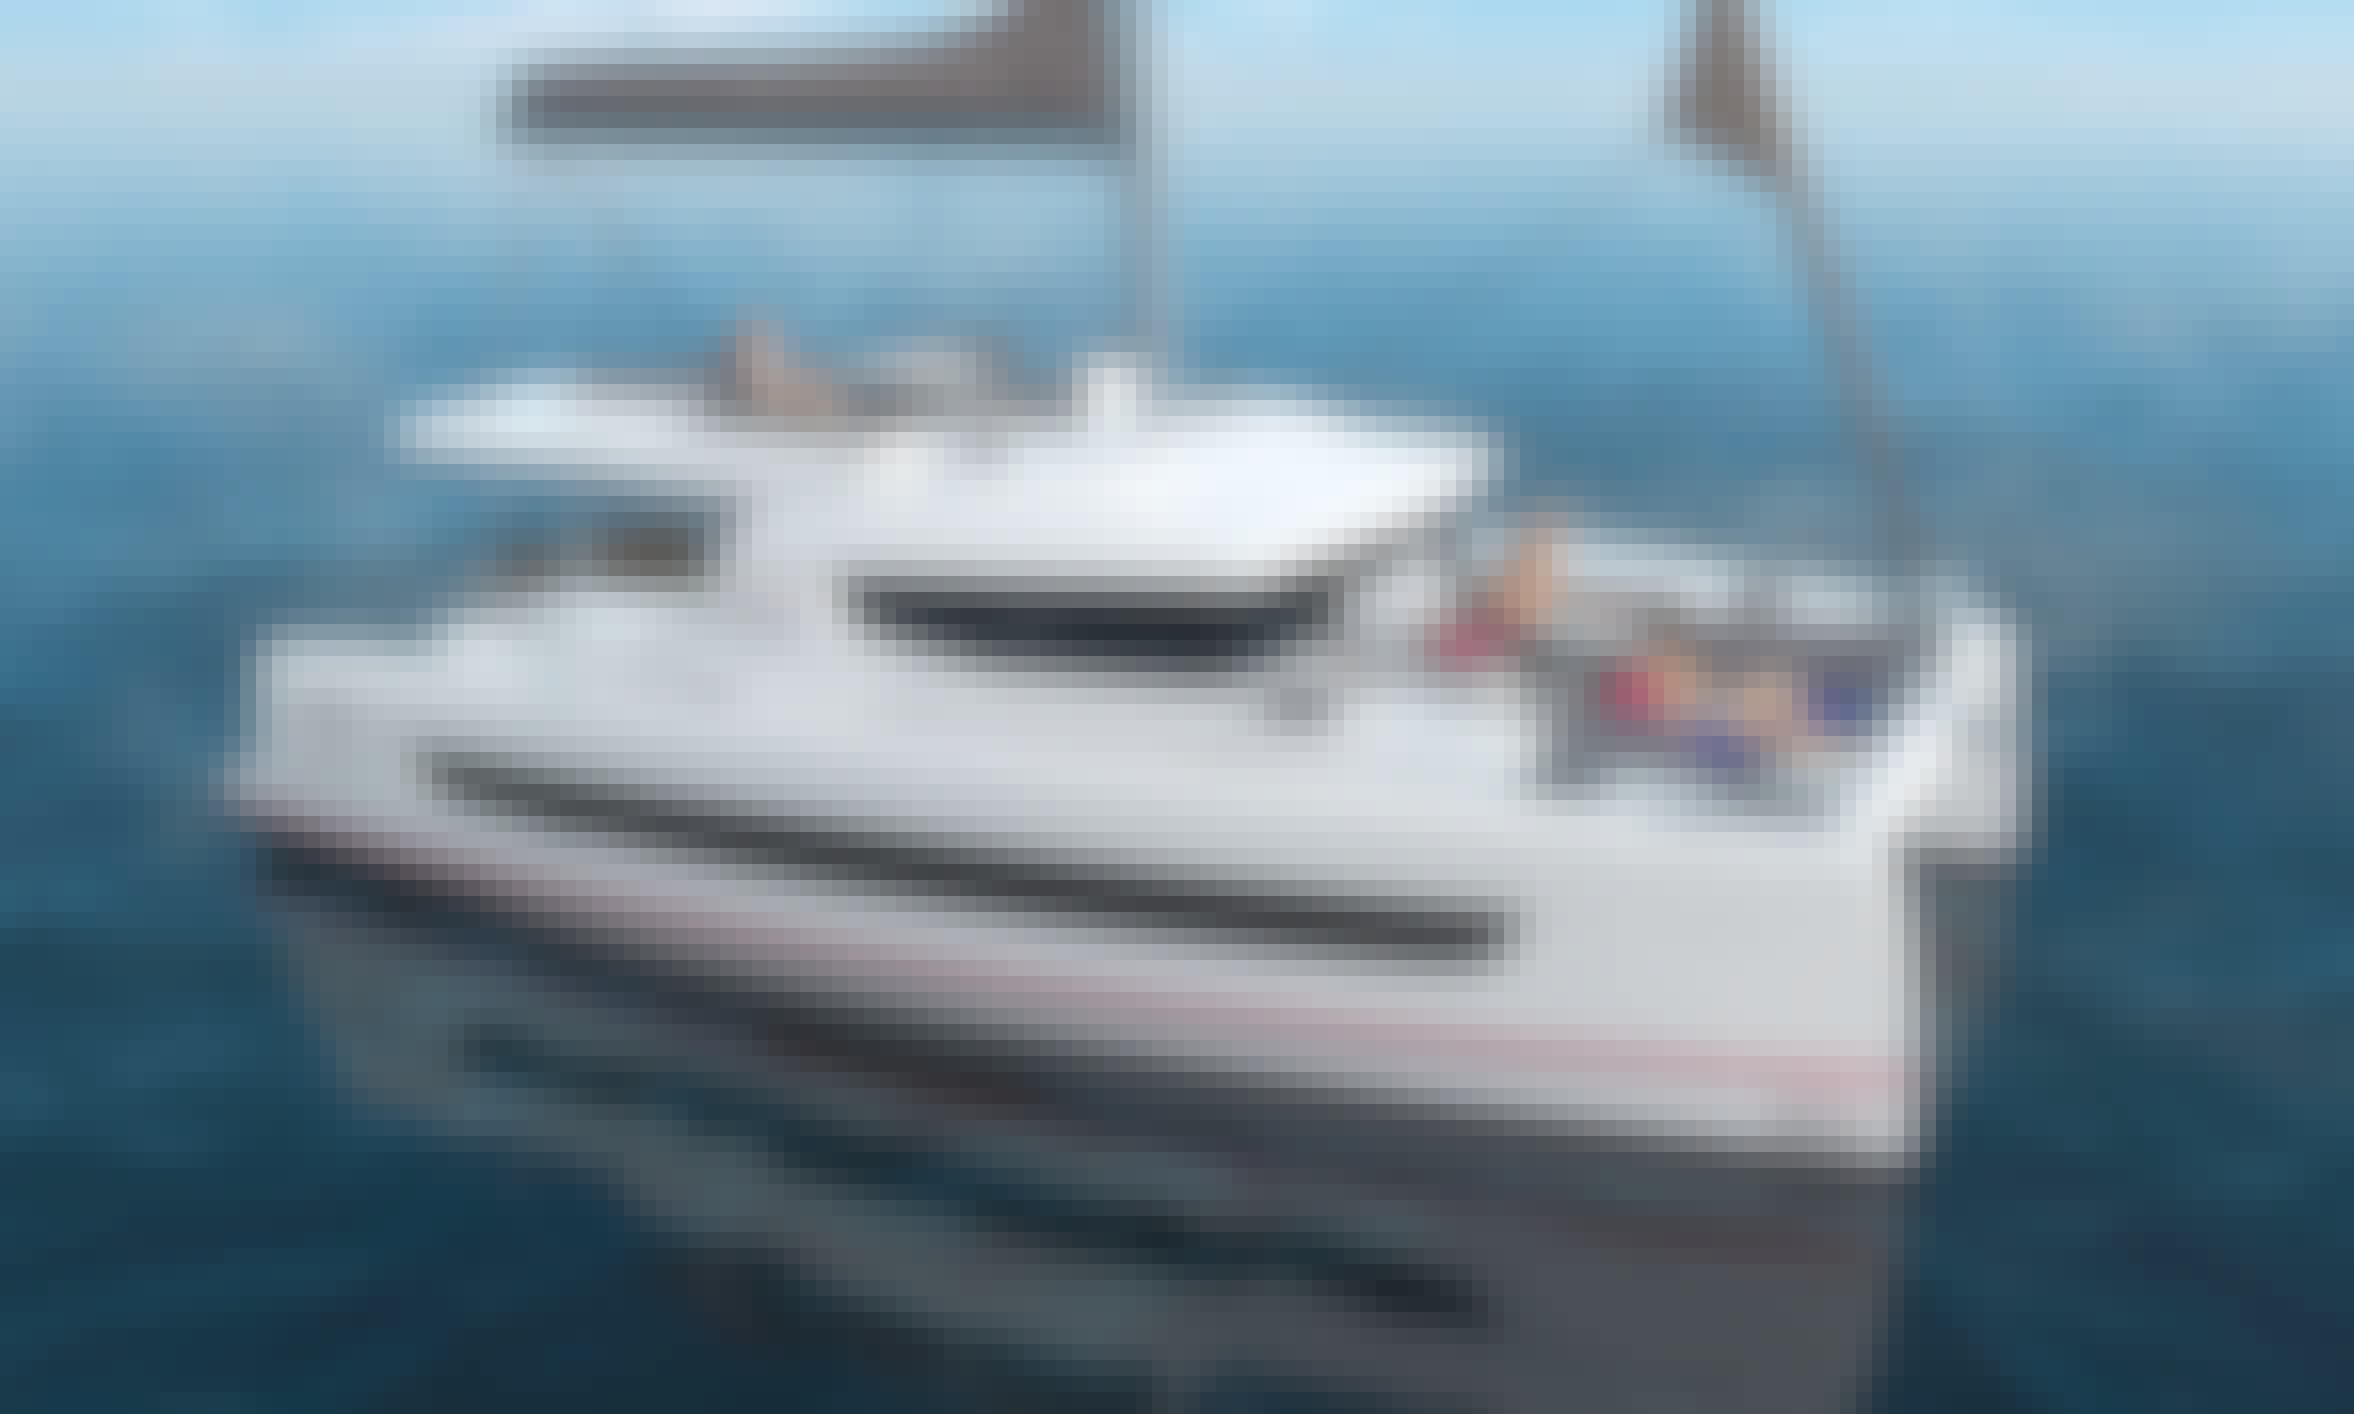 Bali 4.6 Bareboat Charter for Up to 12 People in Rhodes, Greece